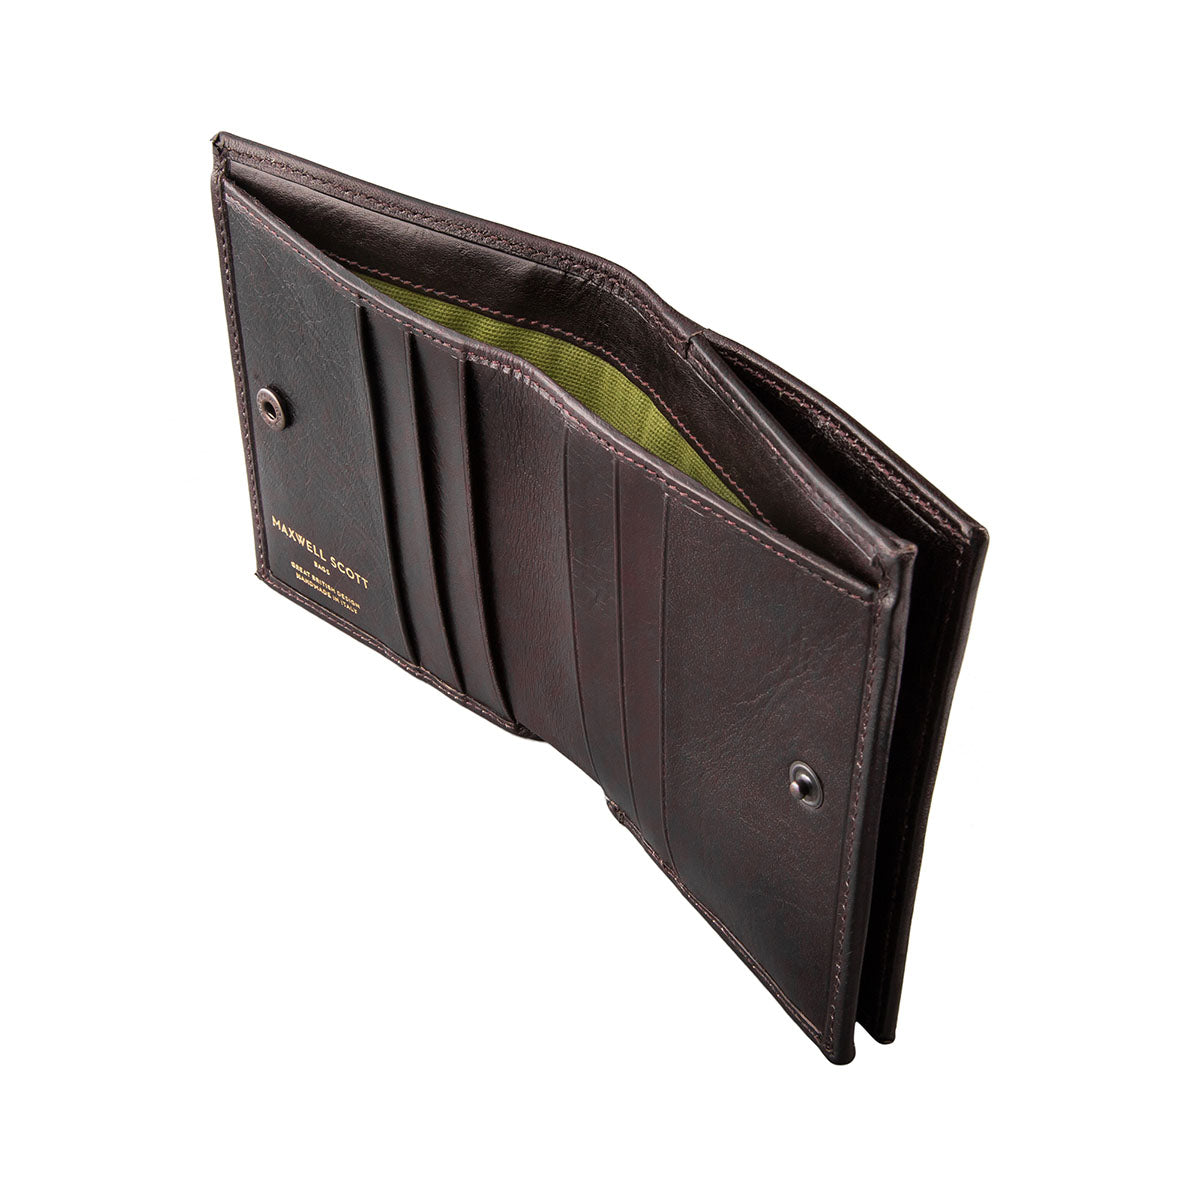 Image 3 of the 'Rocca' Dark Chocolate Veg-Tanned Leather Wallet